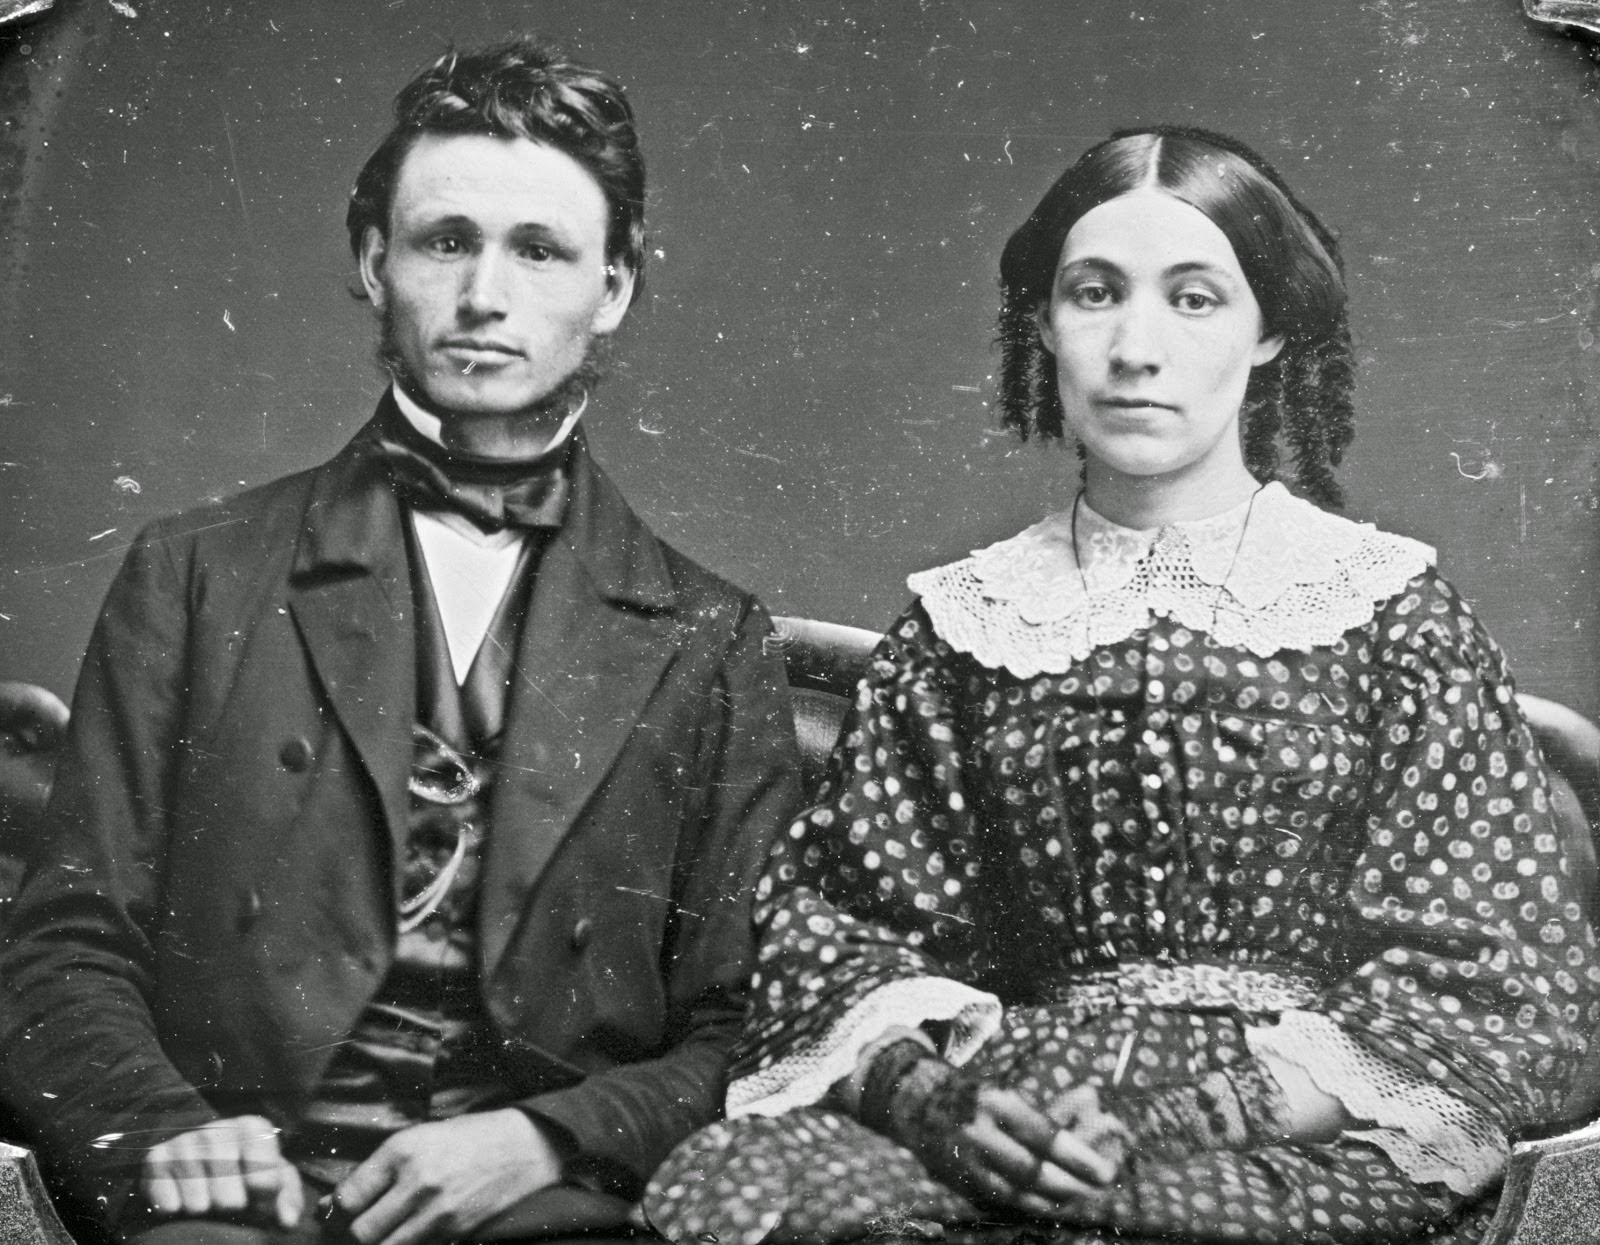 the 19th century gentleman gender roles in 19th century america